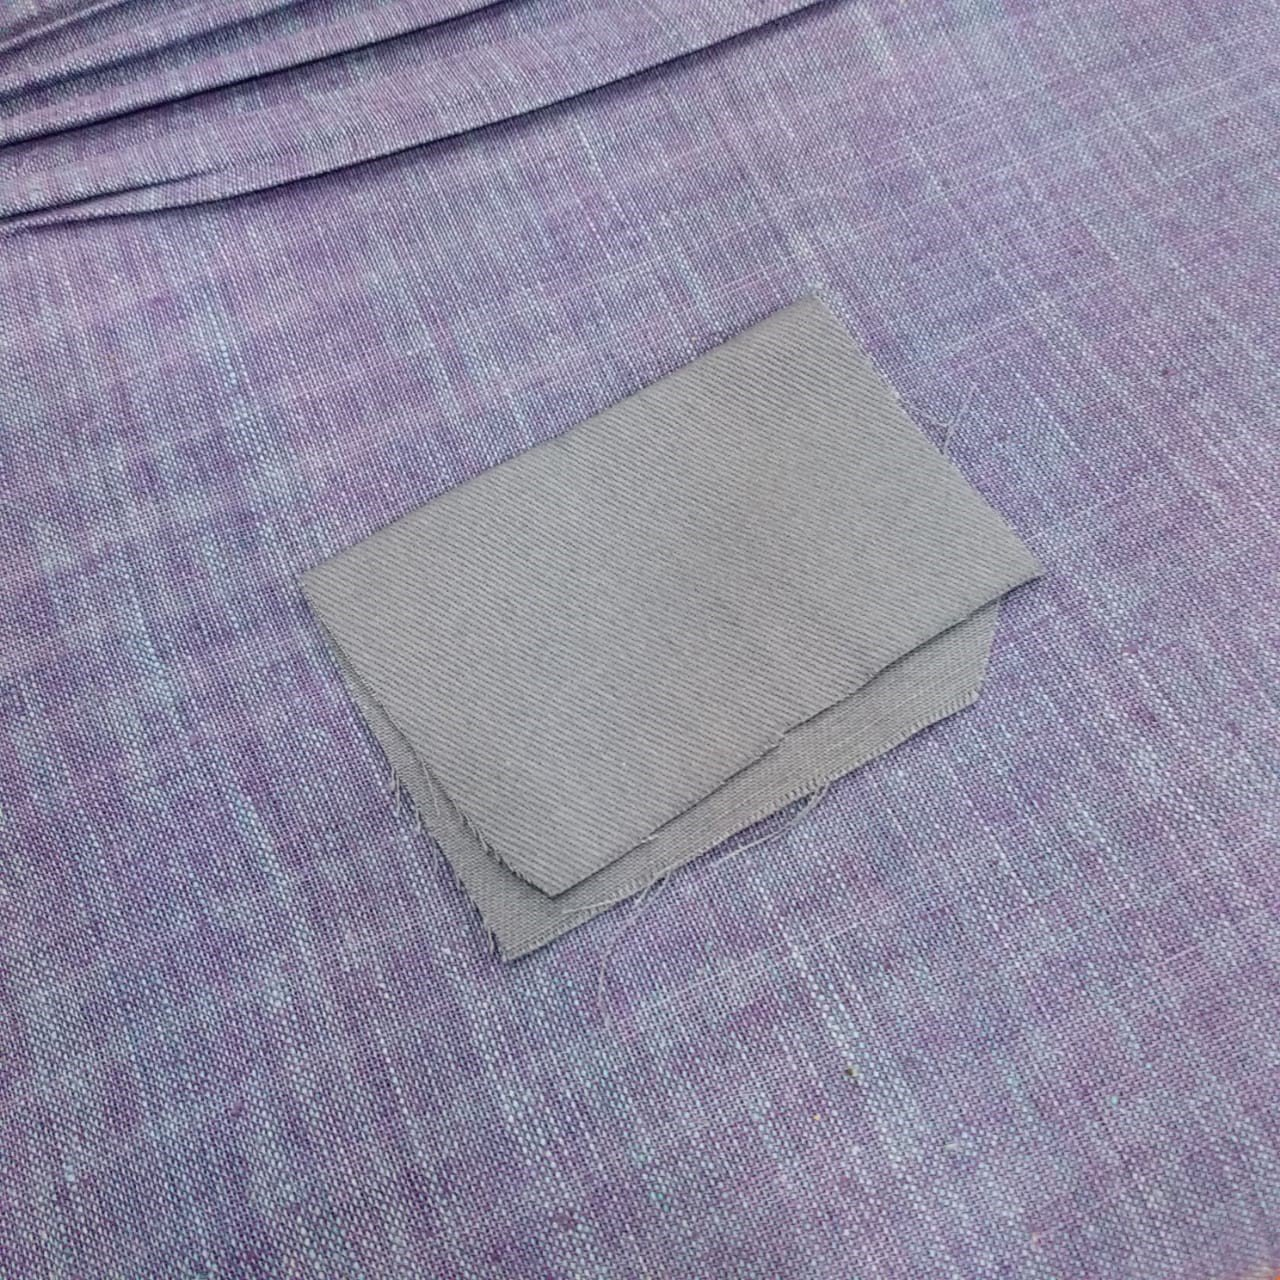 Cotton Khadi with machine woven canvas